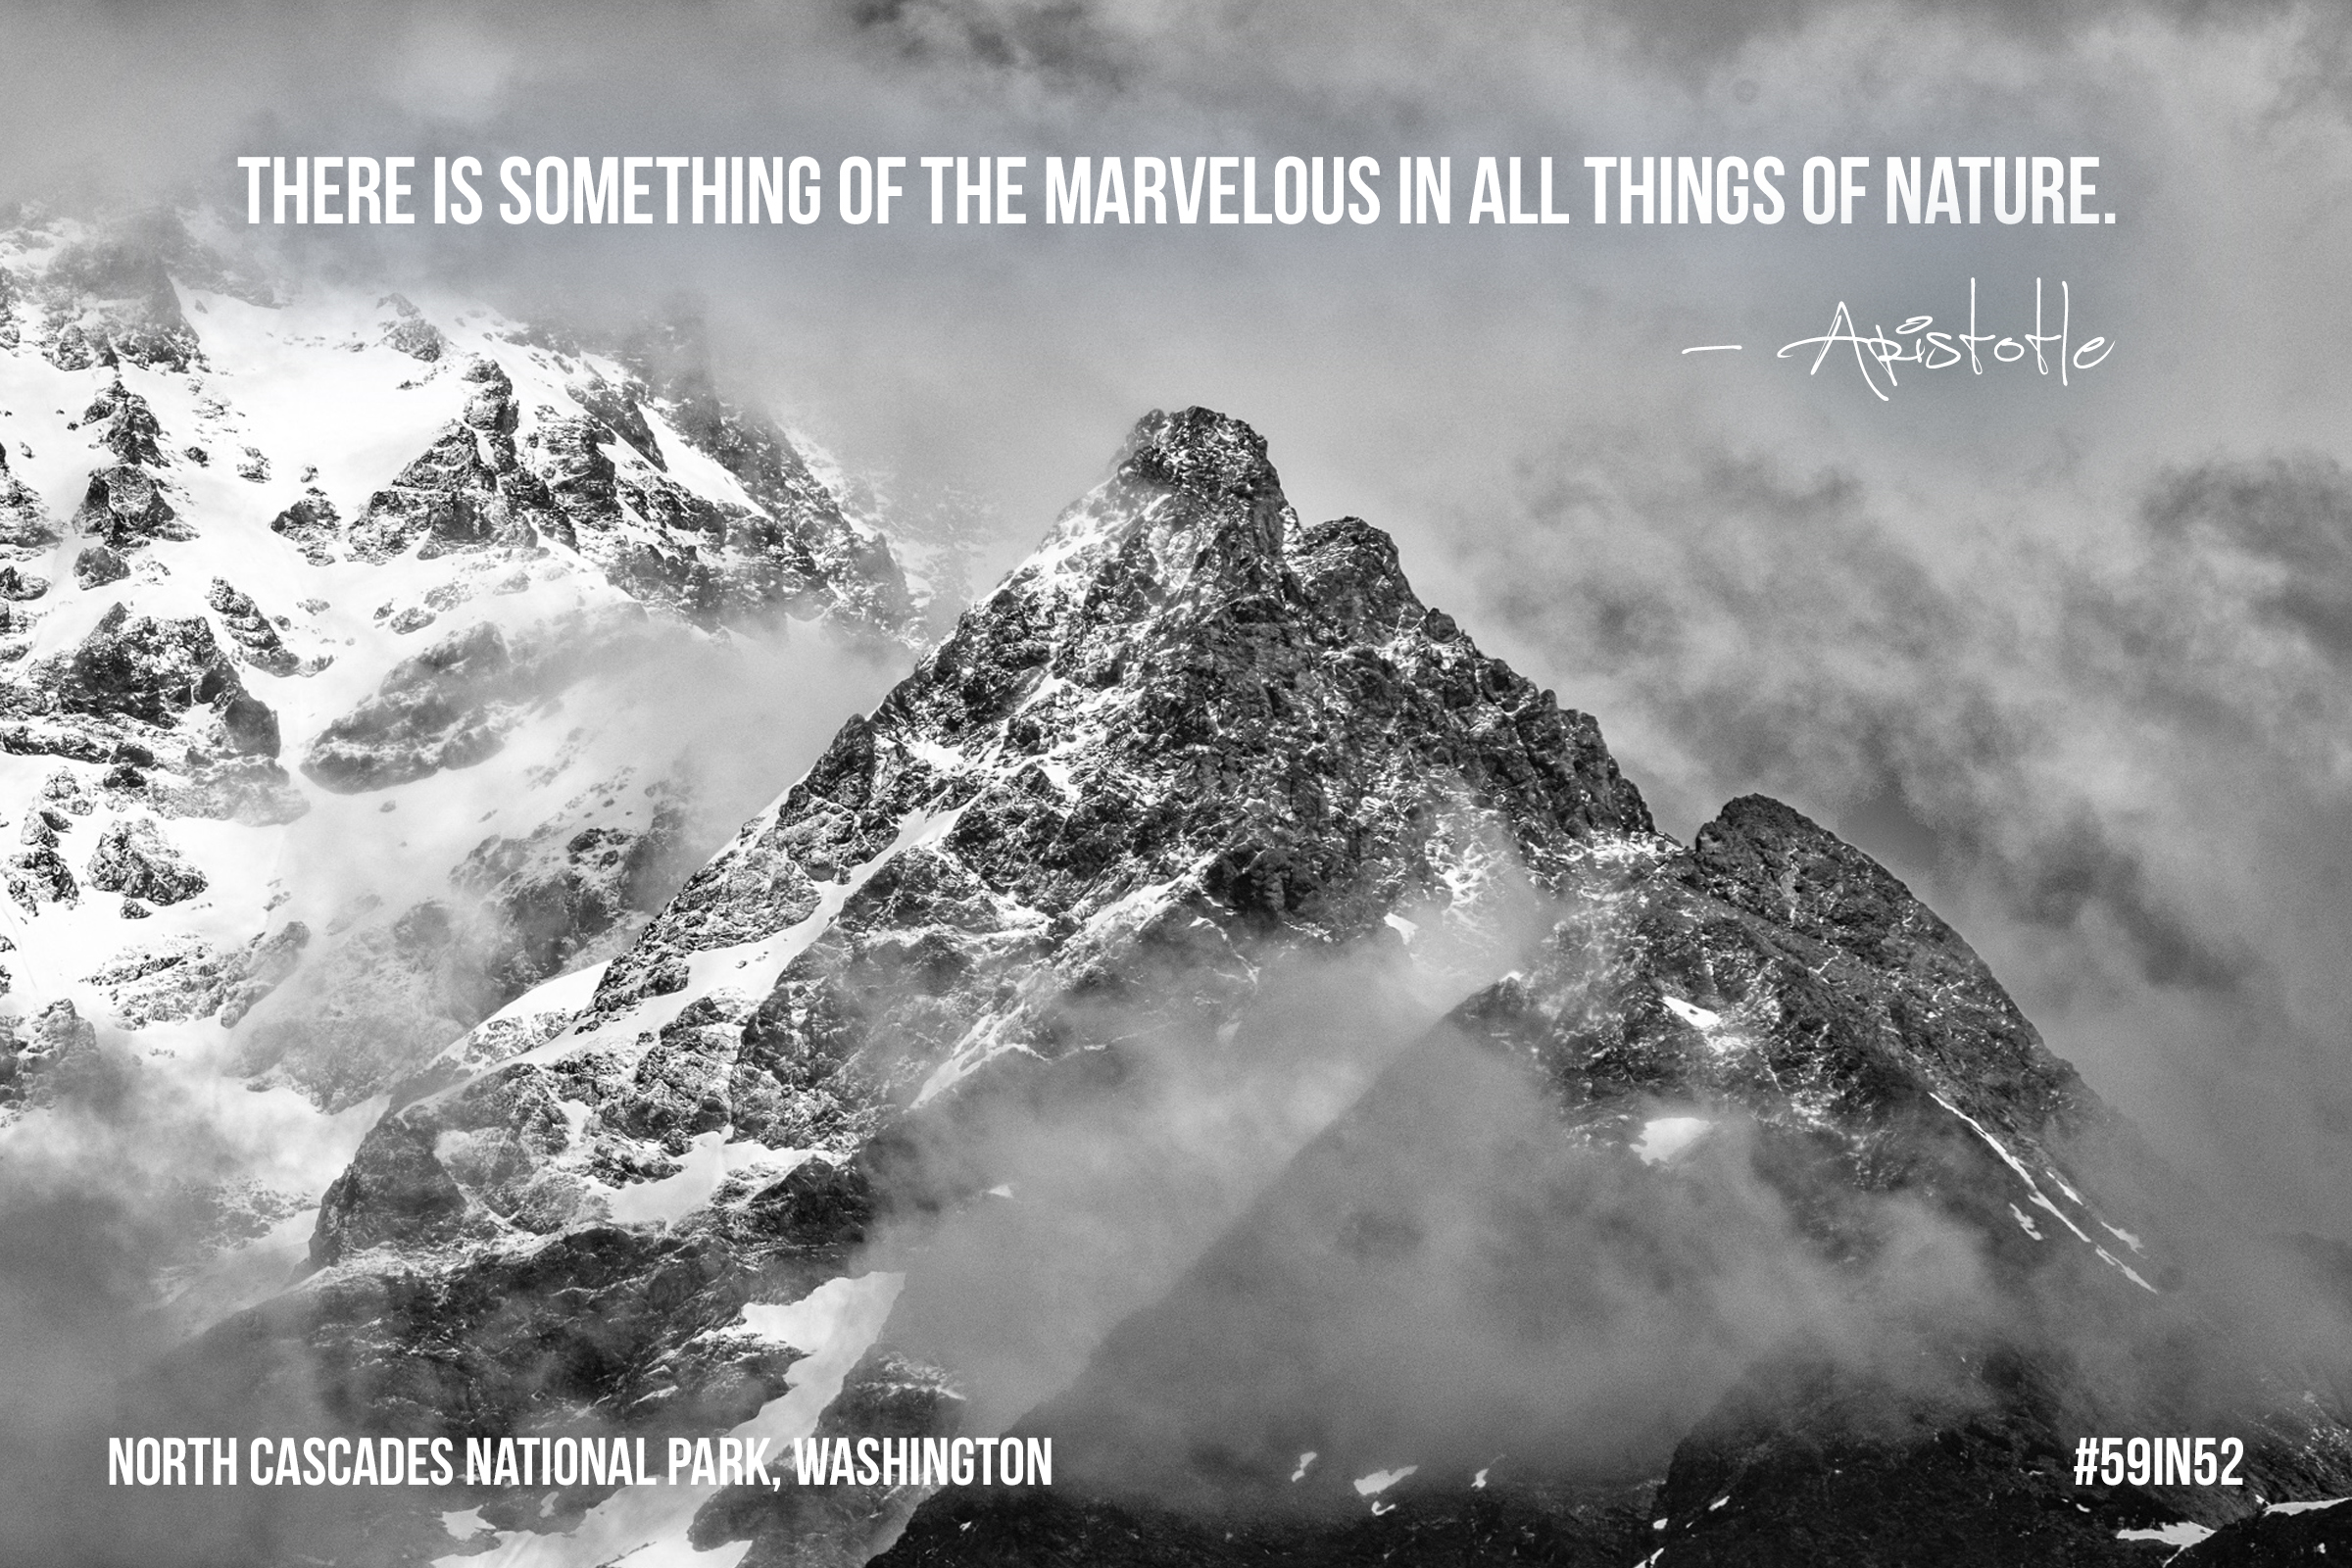 """There is something marvelous in all things of nature."" - Aristotle"